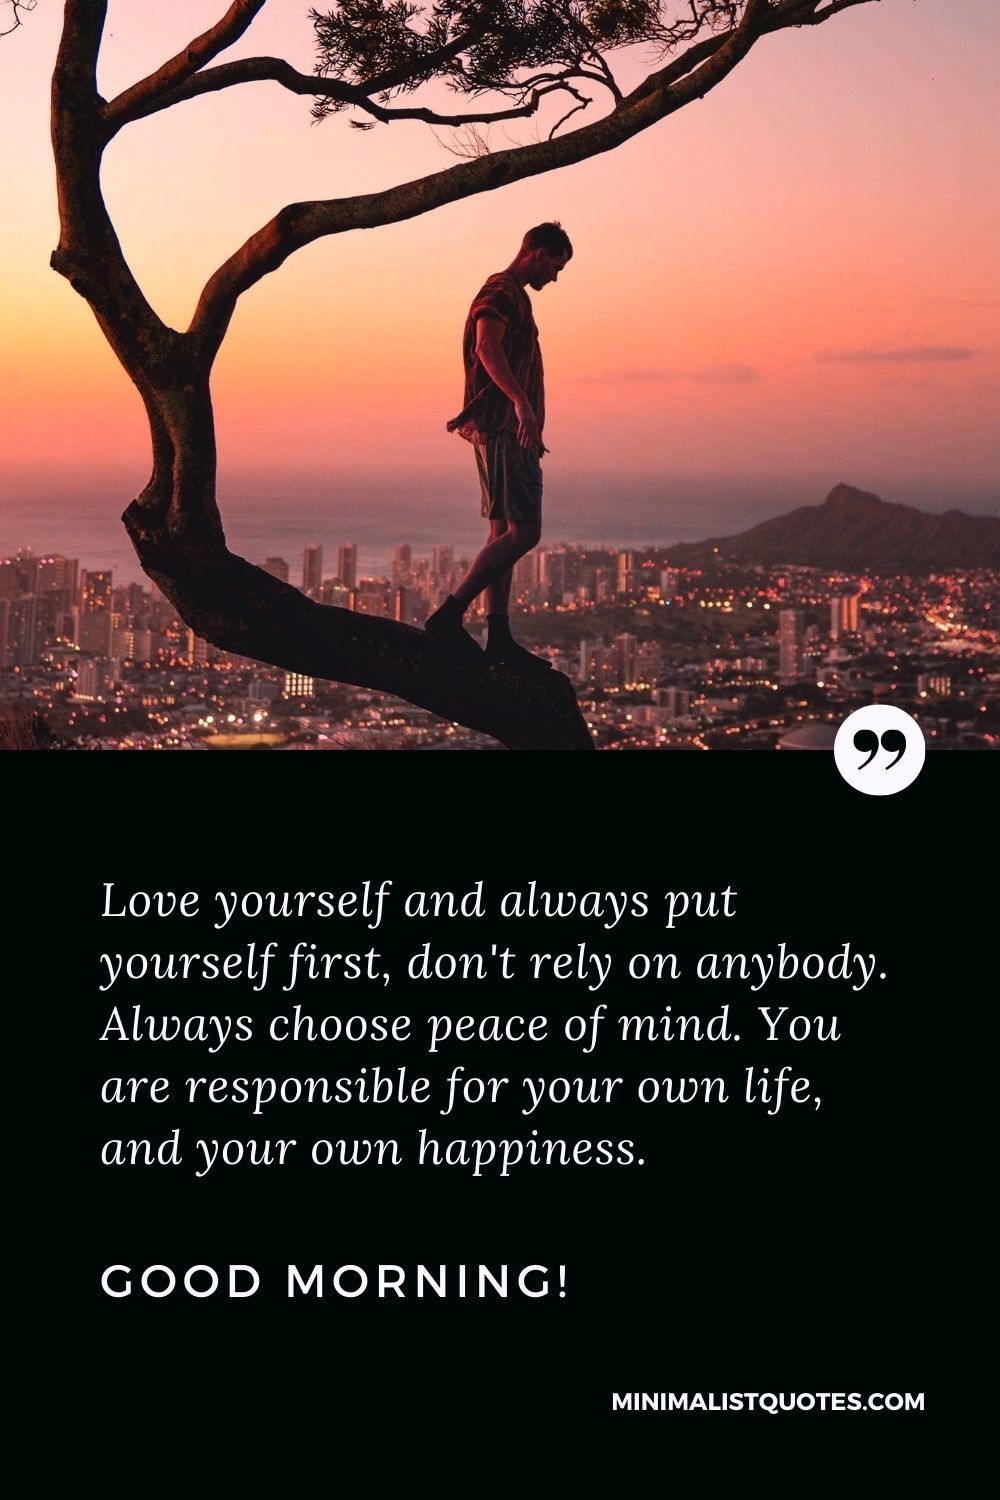 Good Morning Quote, Wish & Message With Image: Love yourself and always put yourself first, don't rely on anybody. Always choose peace of mind. You are responsible for your own life, and your own happiness. Good Morning!